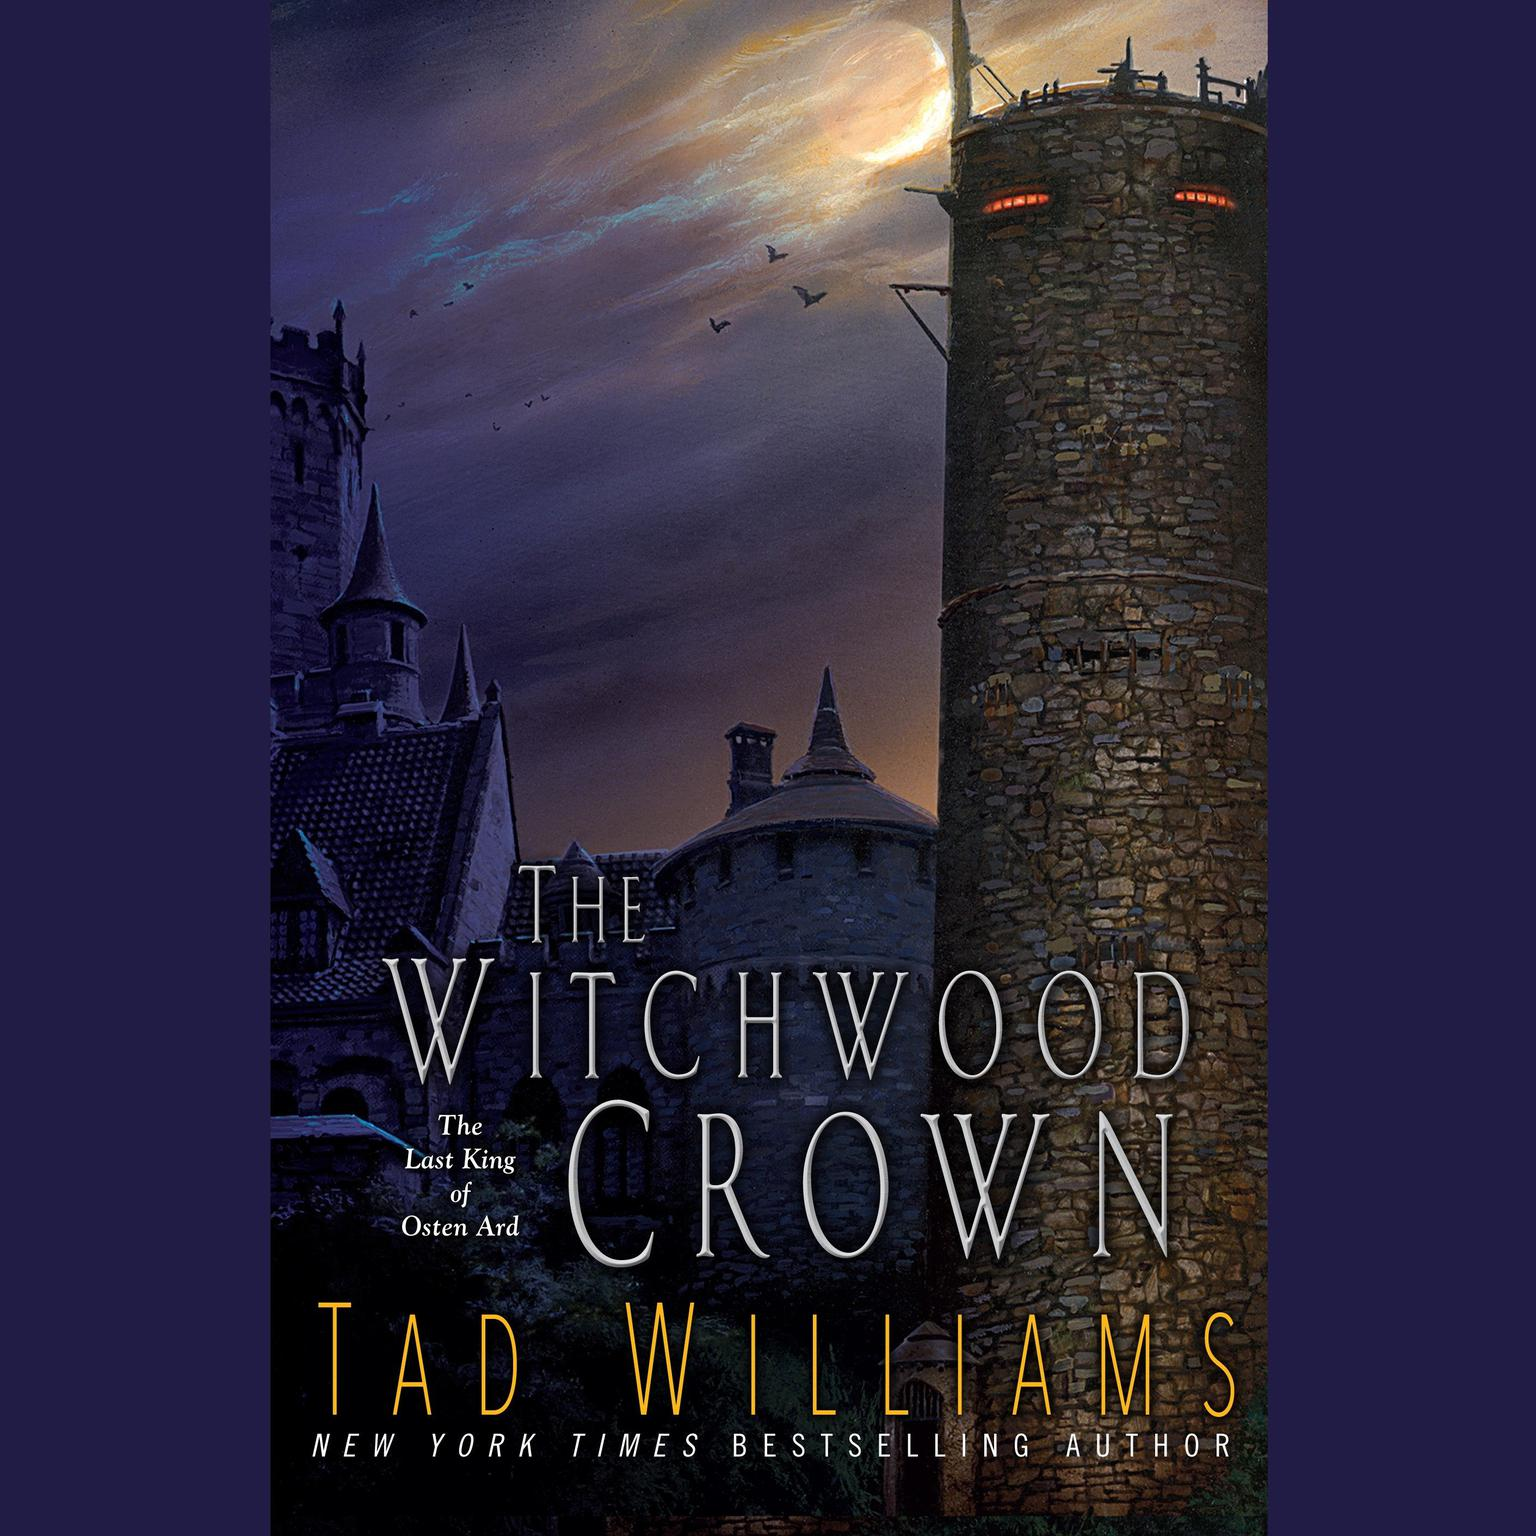 Printable The Witchwood Crown: Book One of The Last King of Osten Ard Audiobook Cover Art